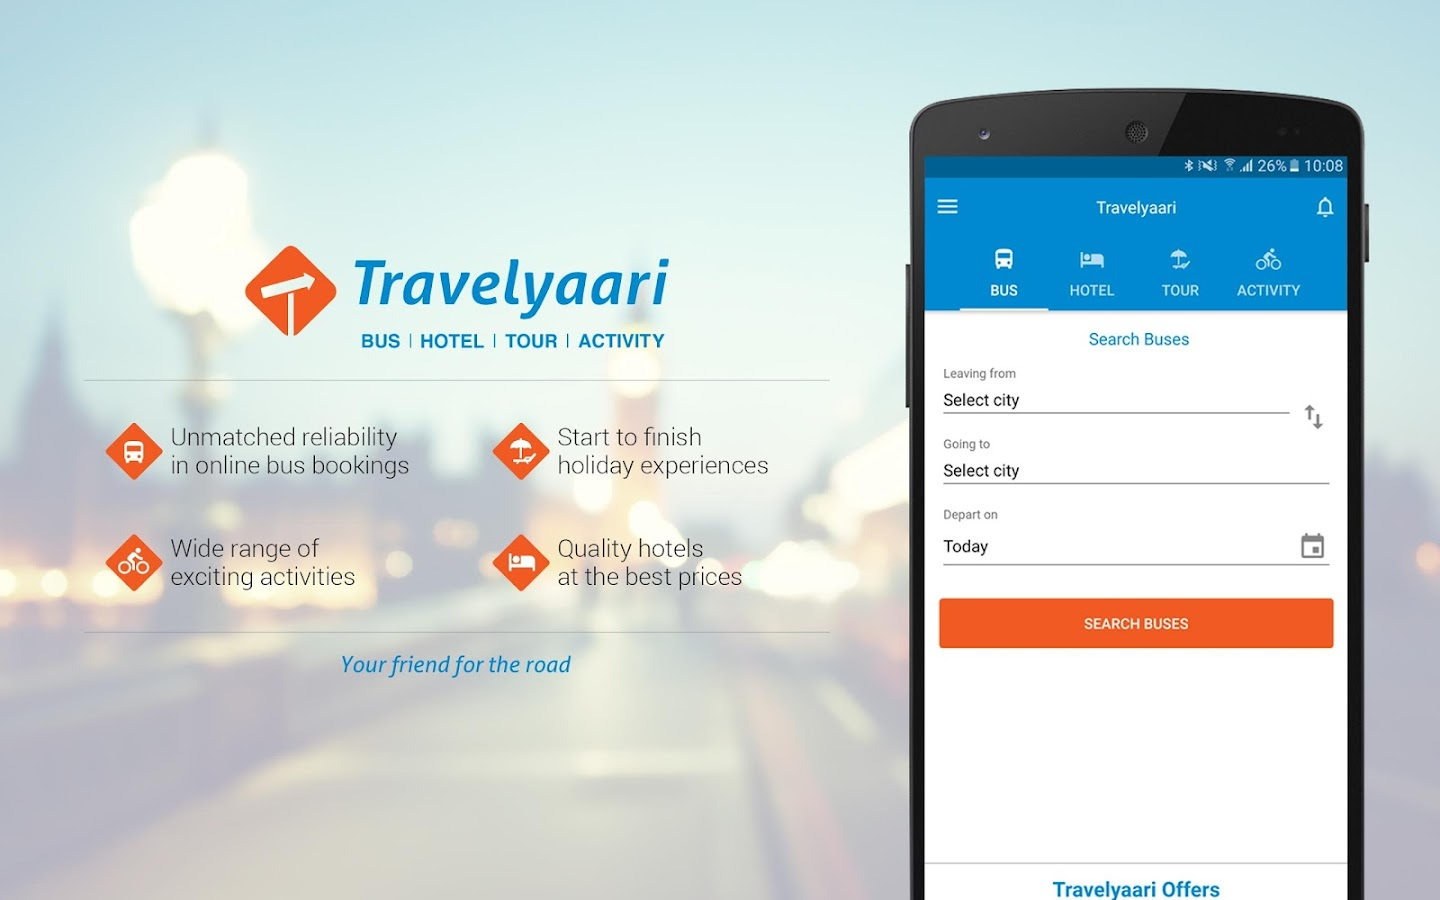 Travelyaari - Book Bus & Tours- screenshot